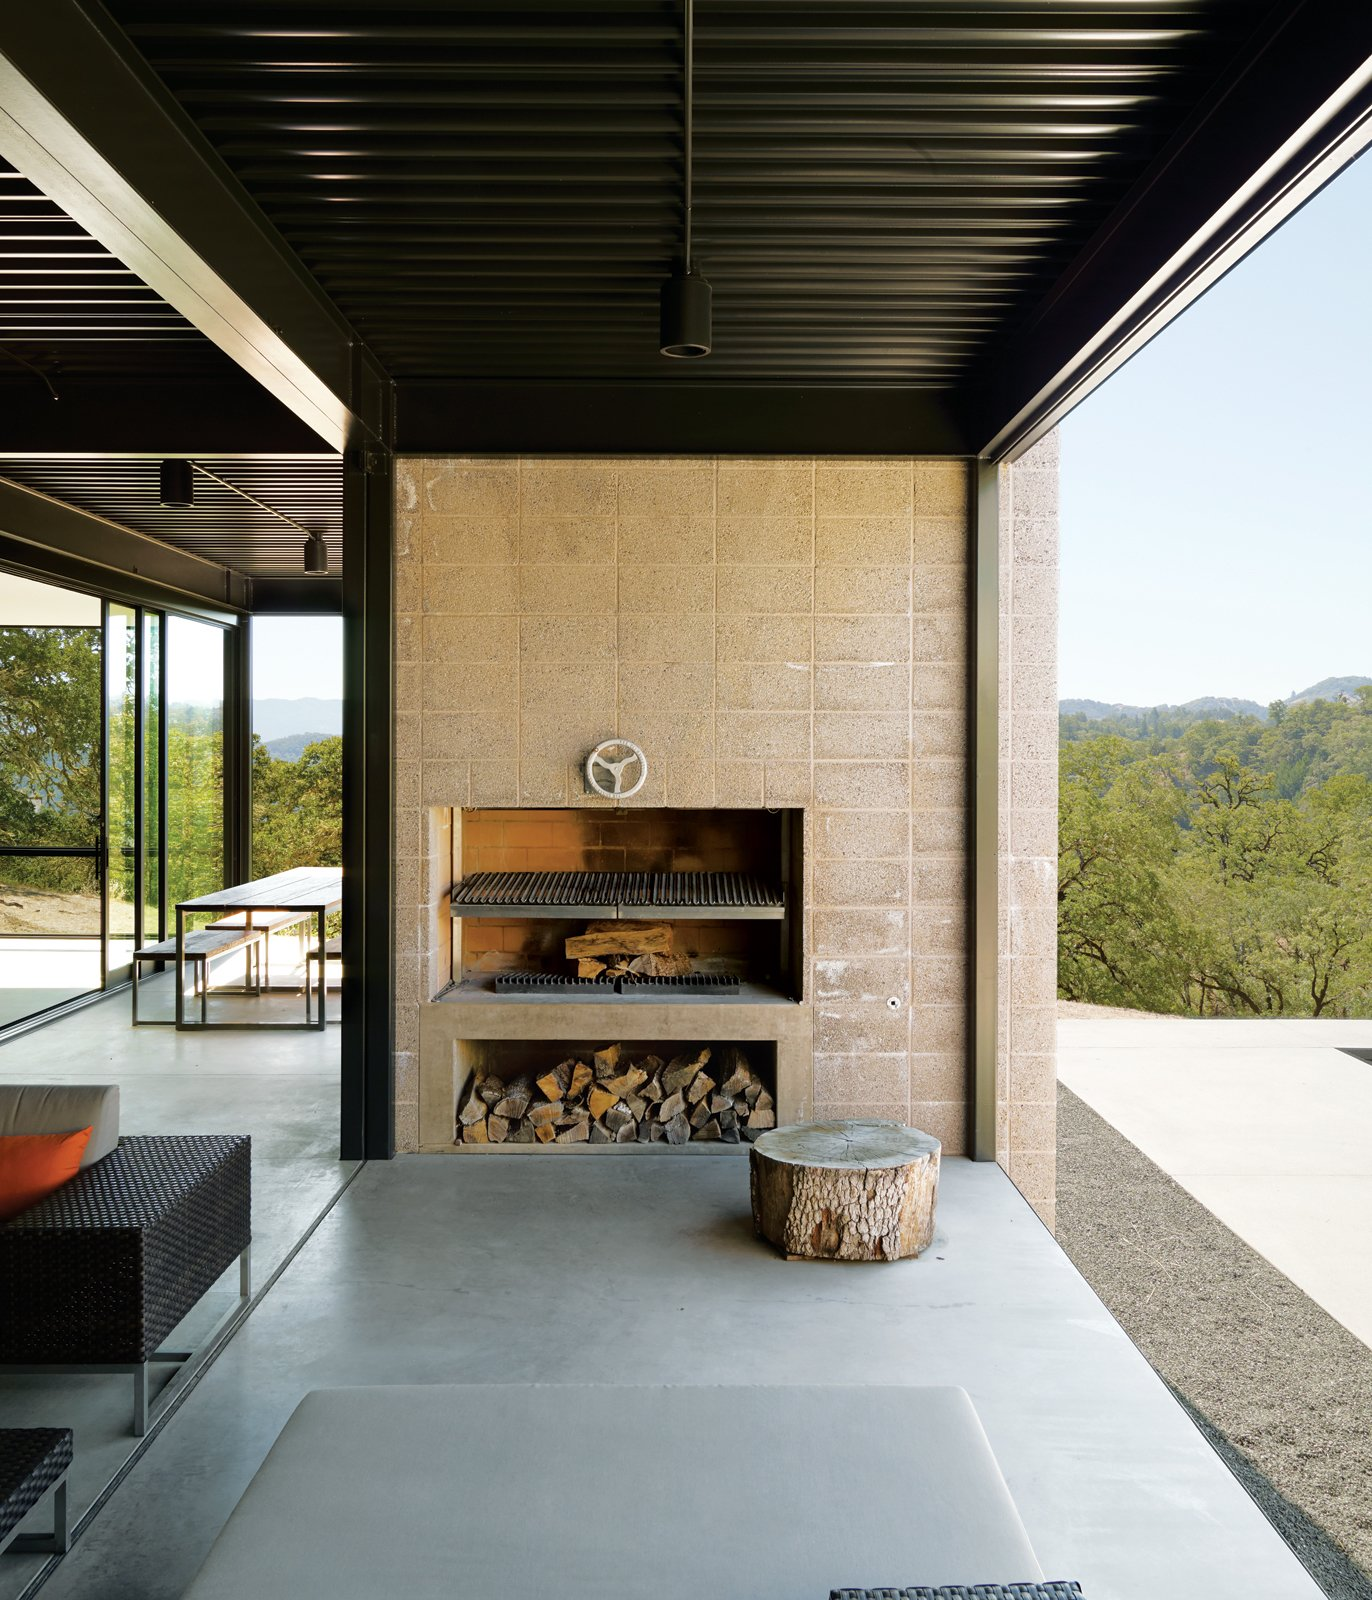 Passionate cooks, the Burtons installed a Mugnaini wood-fired oven in their kitchen and had a custom Grillery fireplace-barbecue built into the concrete block wall on their deck. Beneath the grill they store oak firewood collected from their property.  Photo 6 of 8 in When Prefab Is Painless